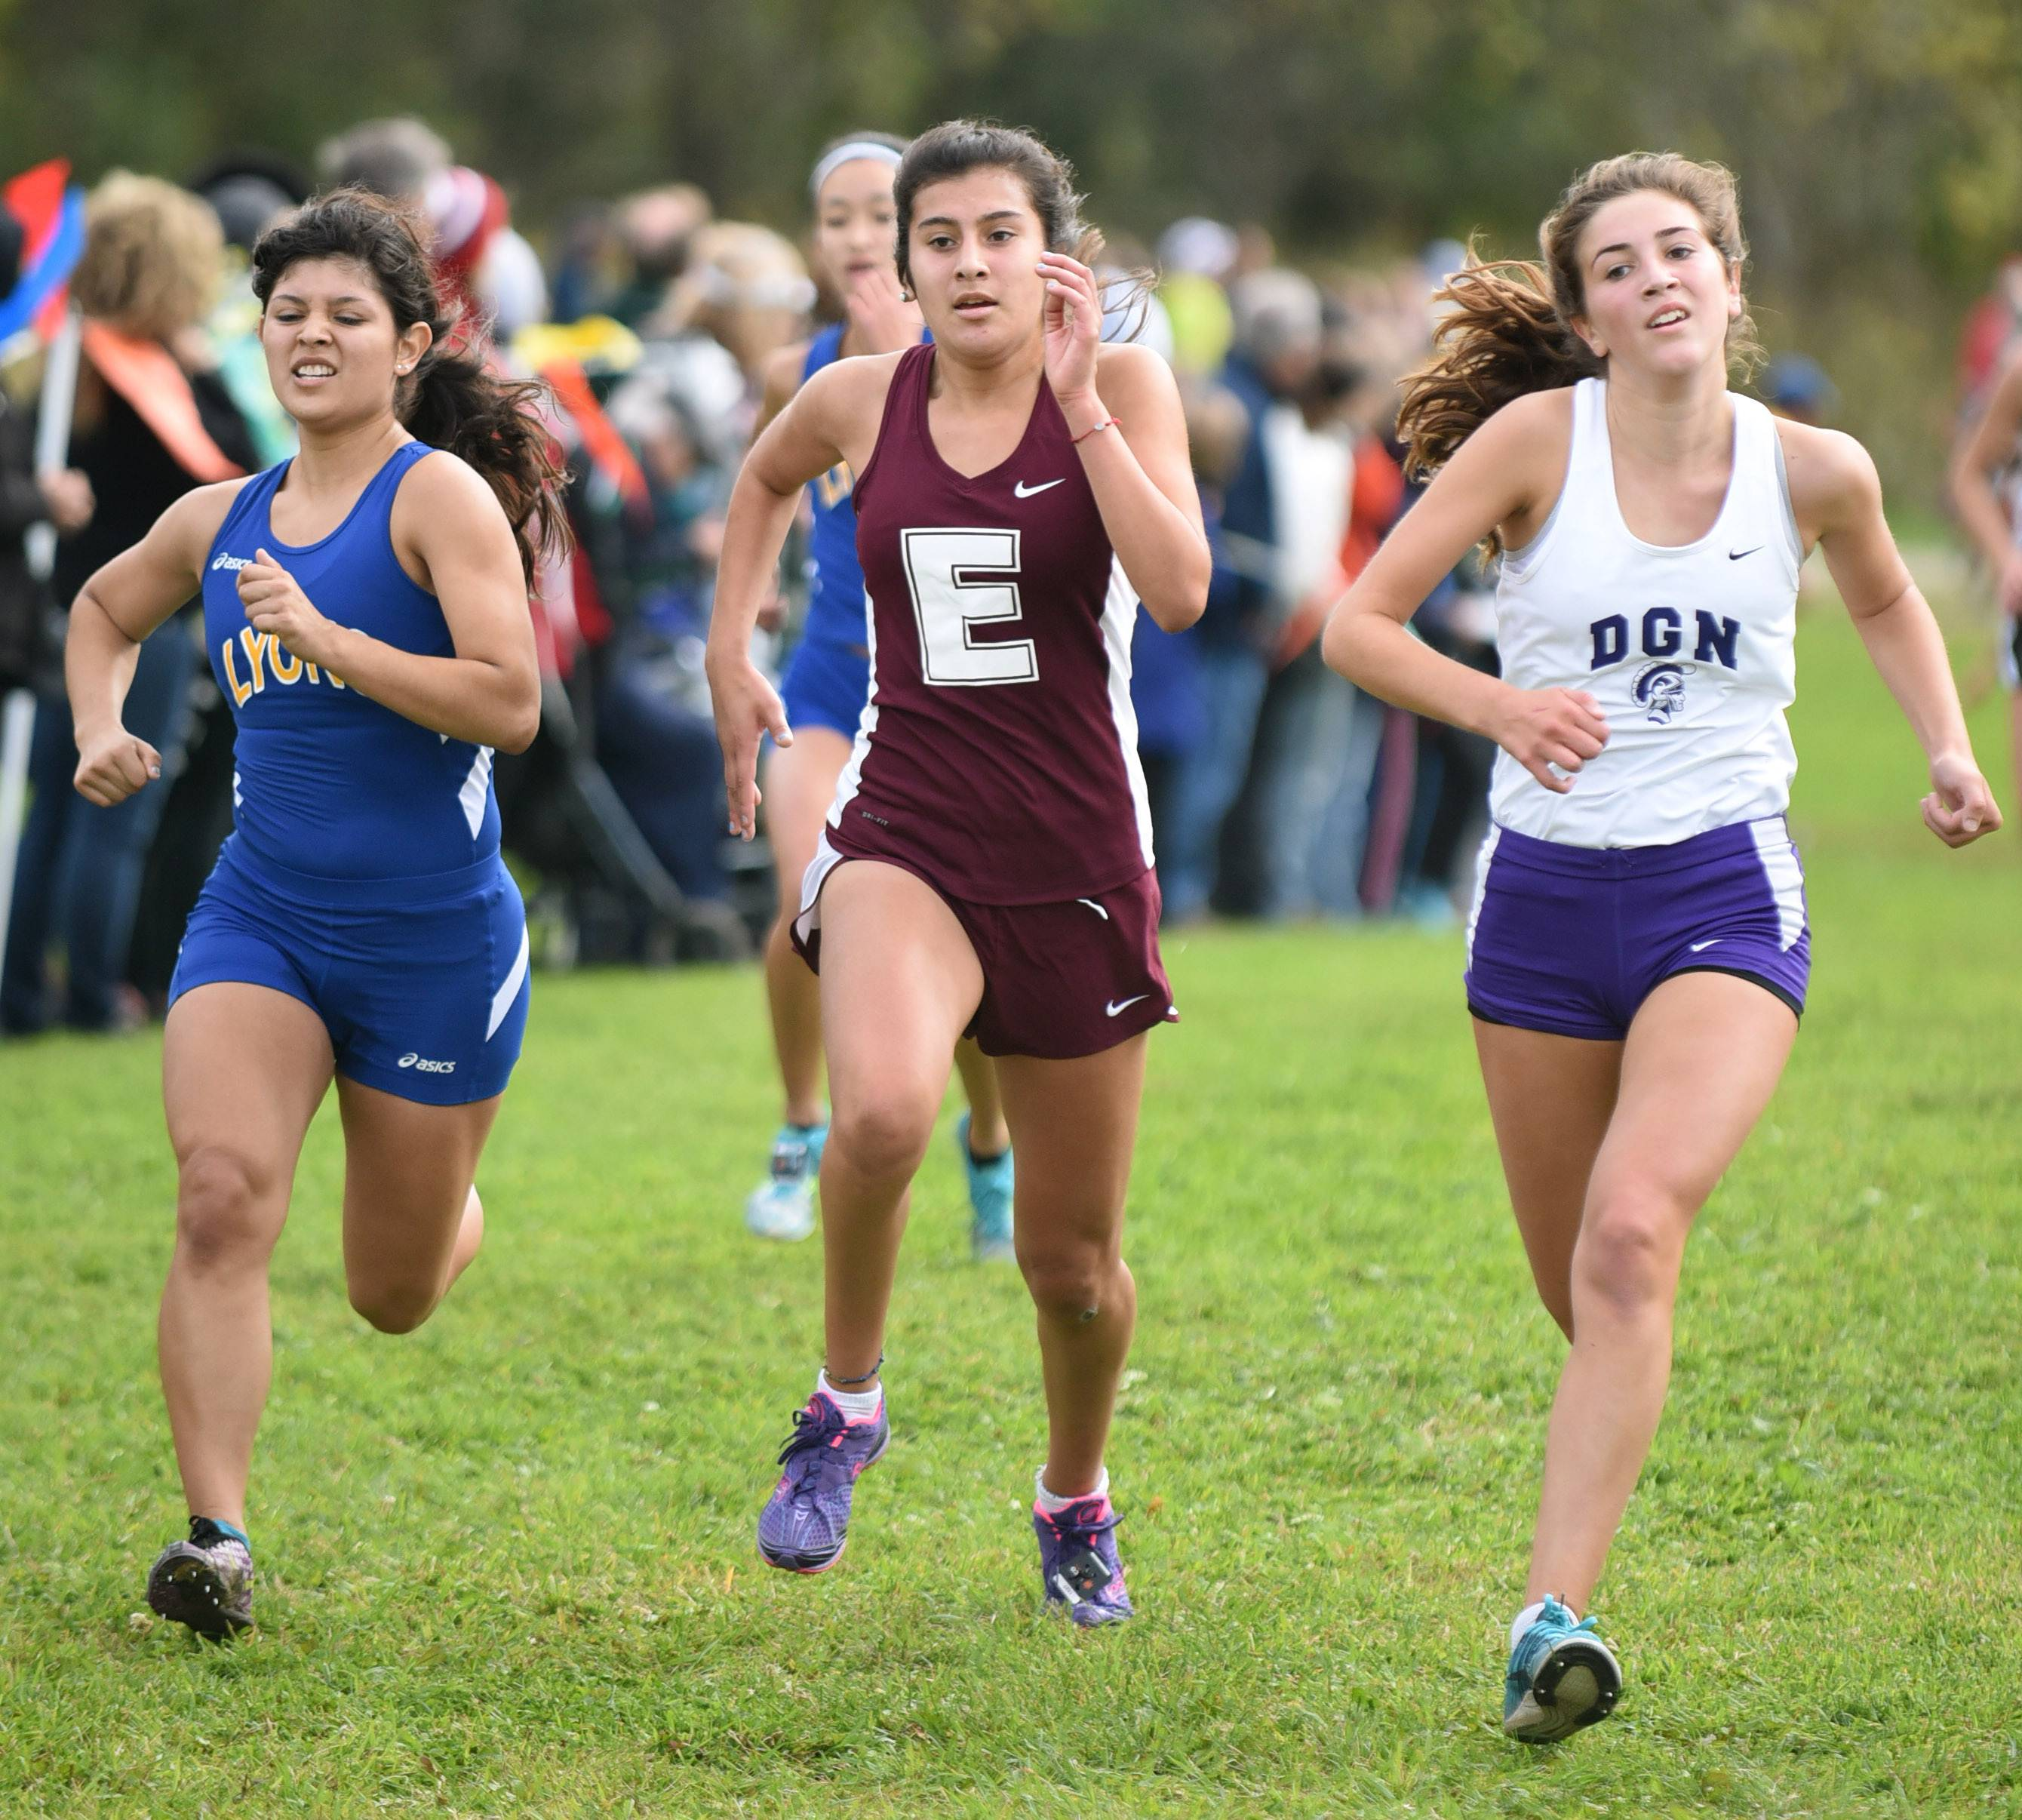 Elgin's Kasey Moreno sprints to the finish line in the girls varsity run at the St. Charles North cross country invitational at LeRoy Oakes Saturday.